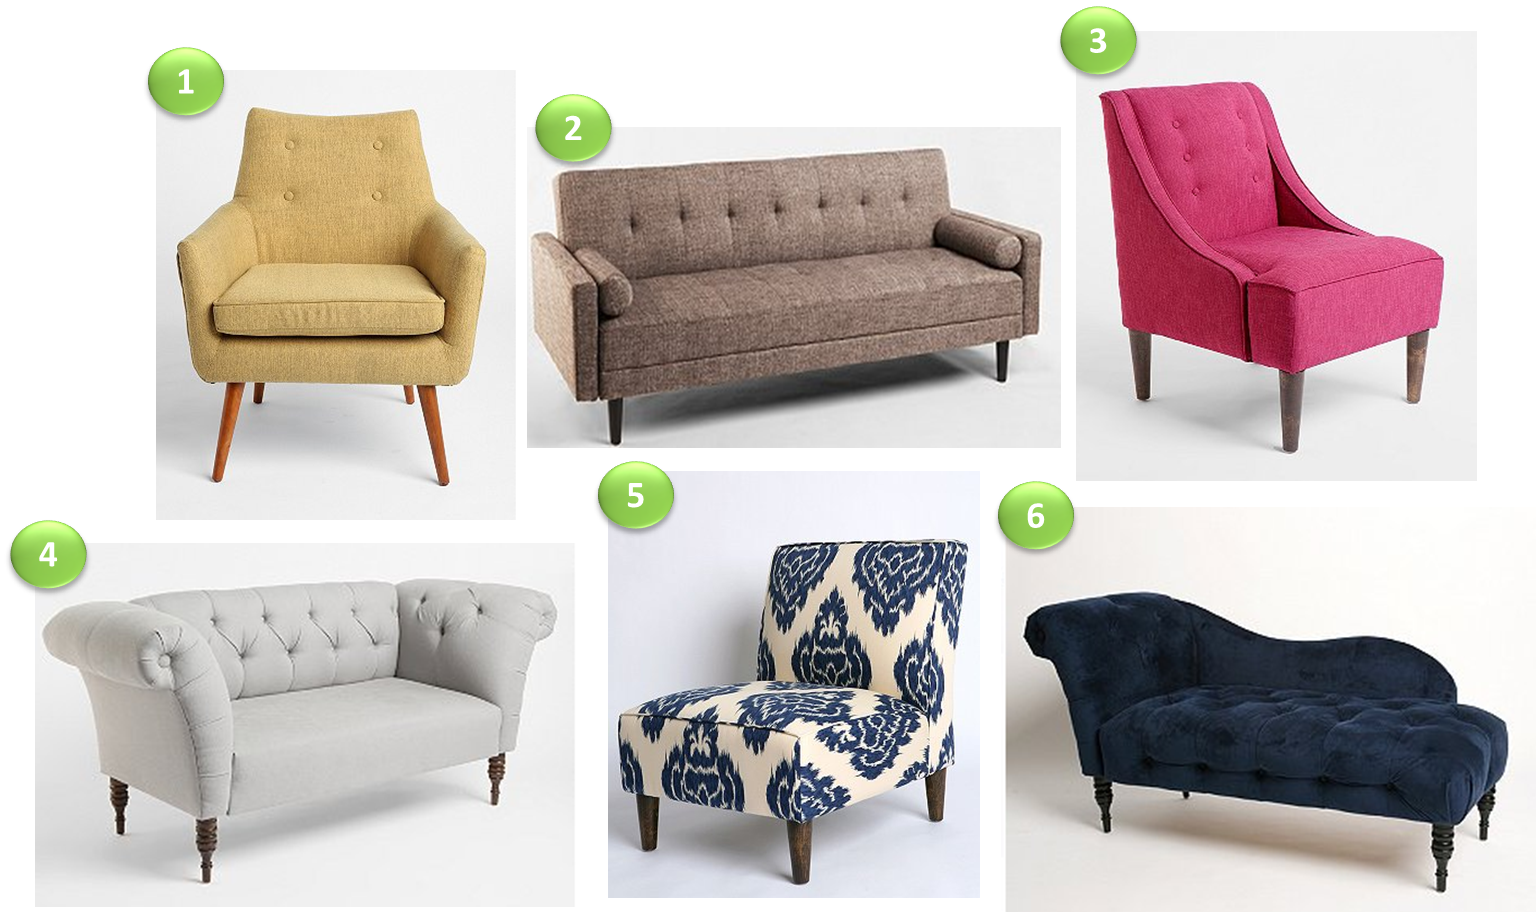 urban outfitters inexpensive chairs and sofas home decor accents rh ar pinterest com